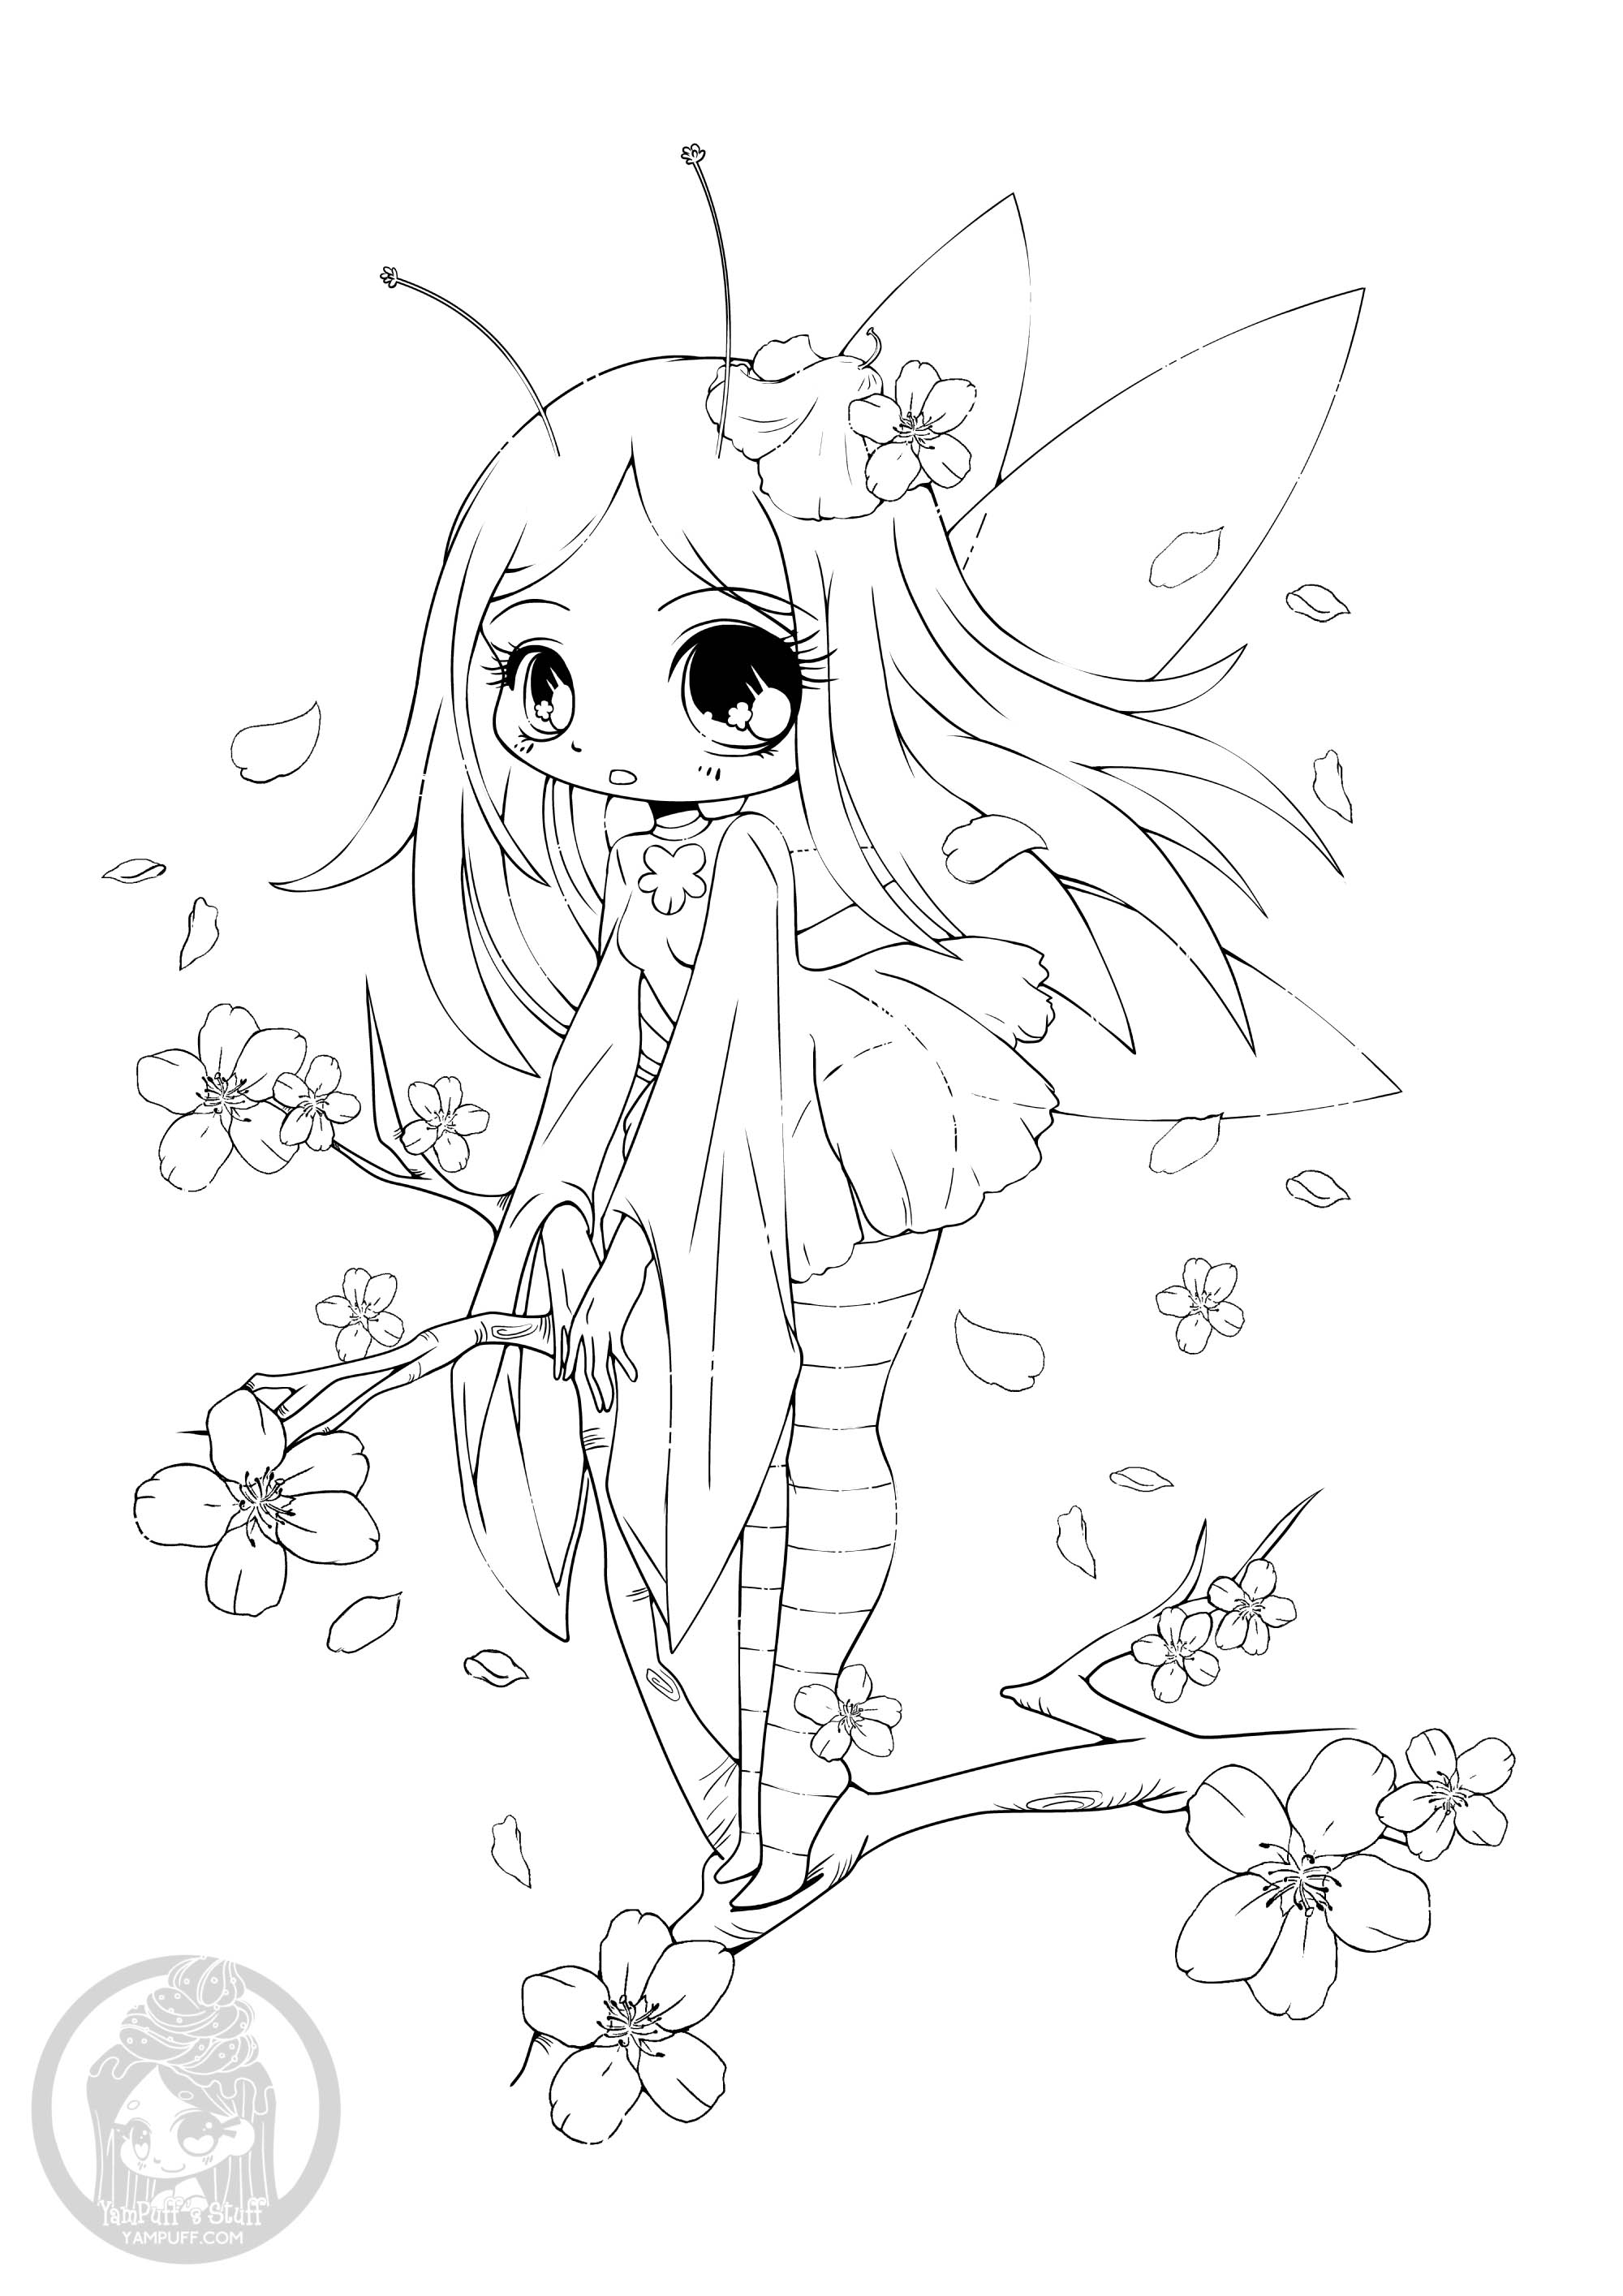 coloring pages for kids kawaii kawaii to print kawaii kids coloring pages kids for kawaii coloring pages